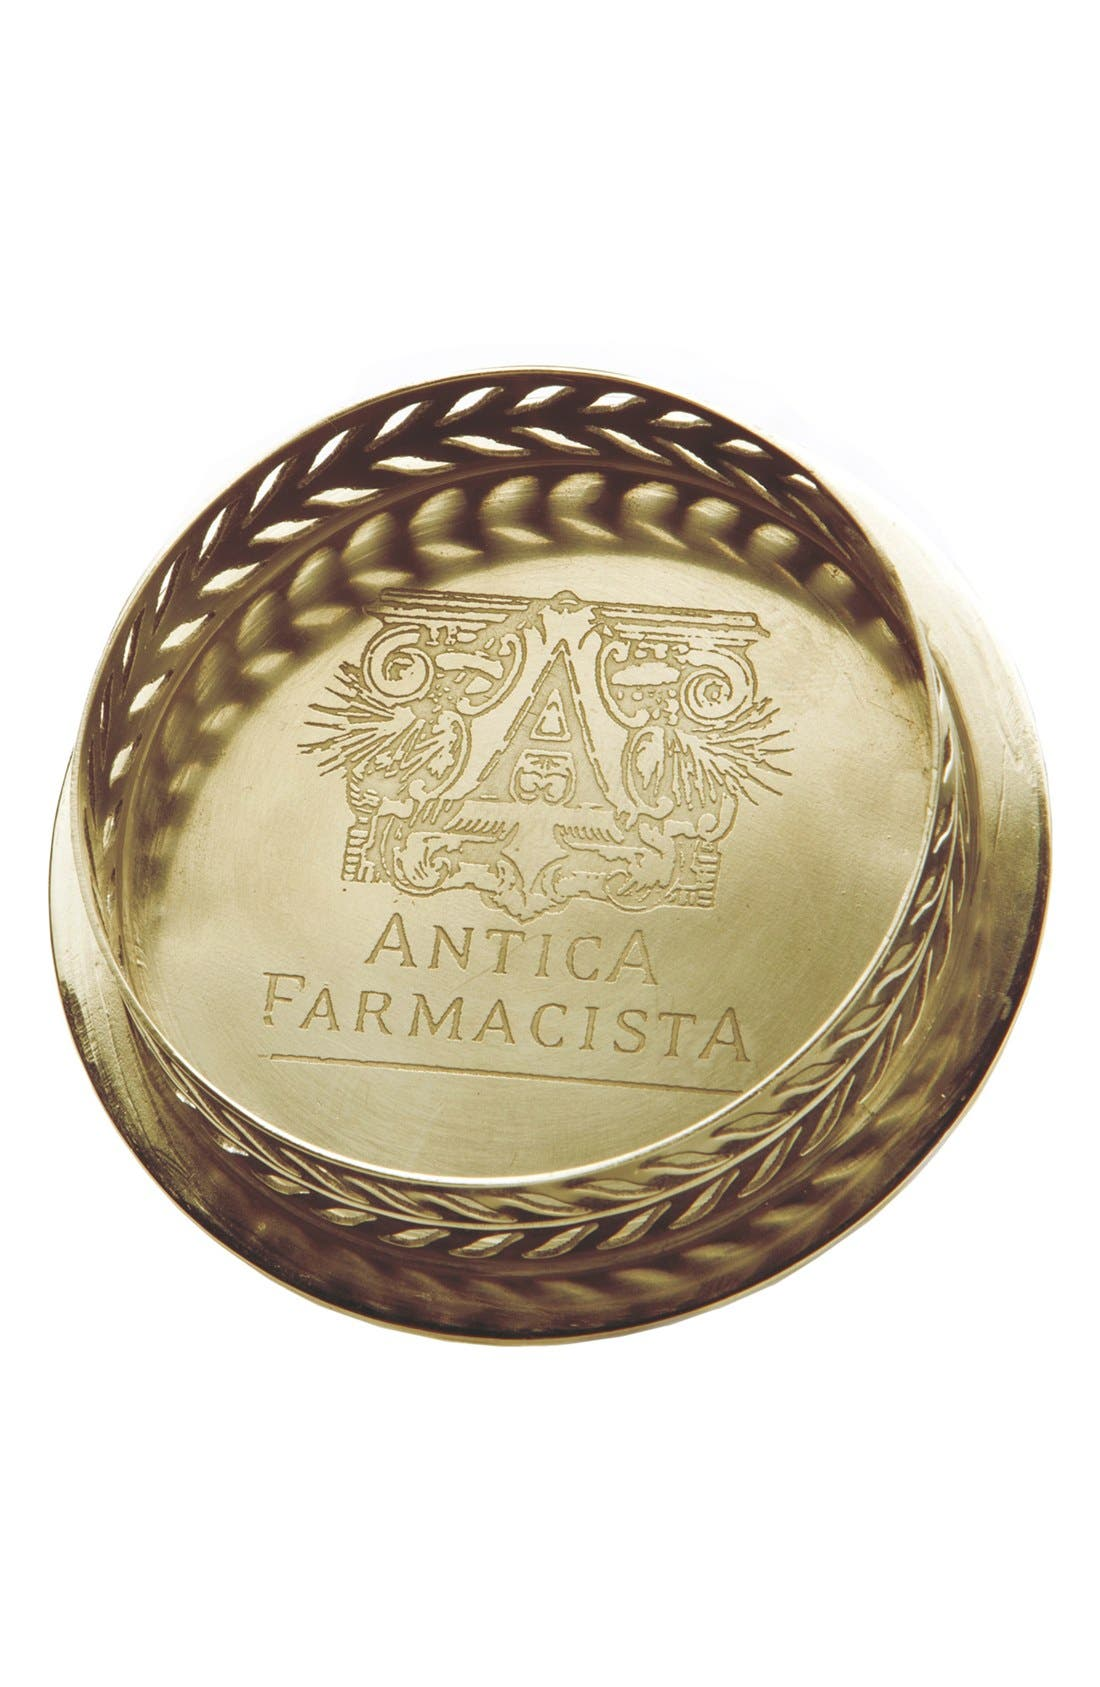 Alternate Image 1 Selected - Antica Farmacista Brass Home Ambiance Diffuser Tray (8.5 oz.)